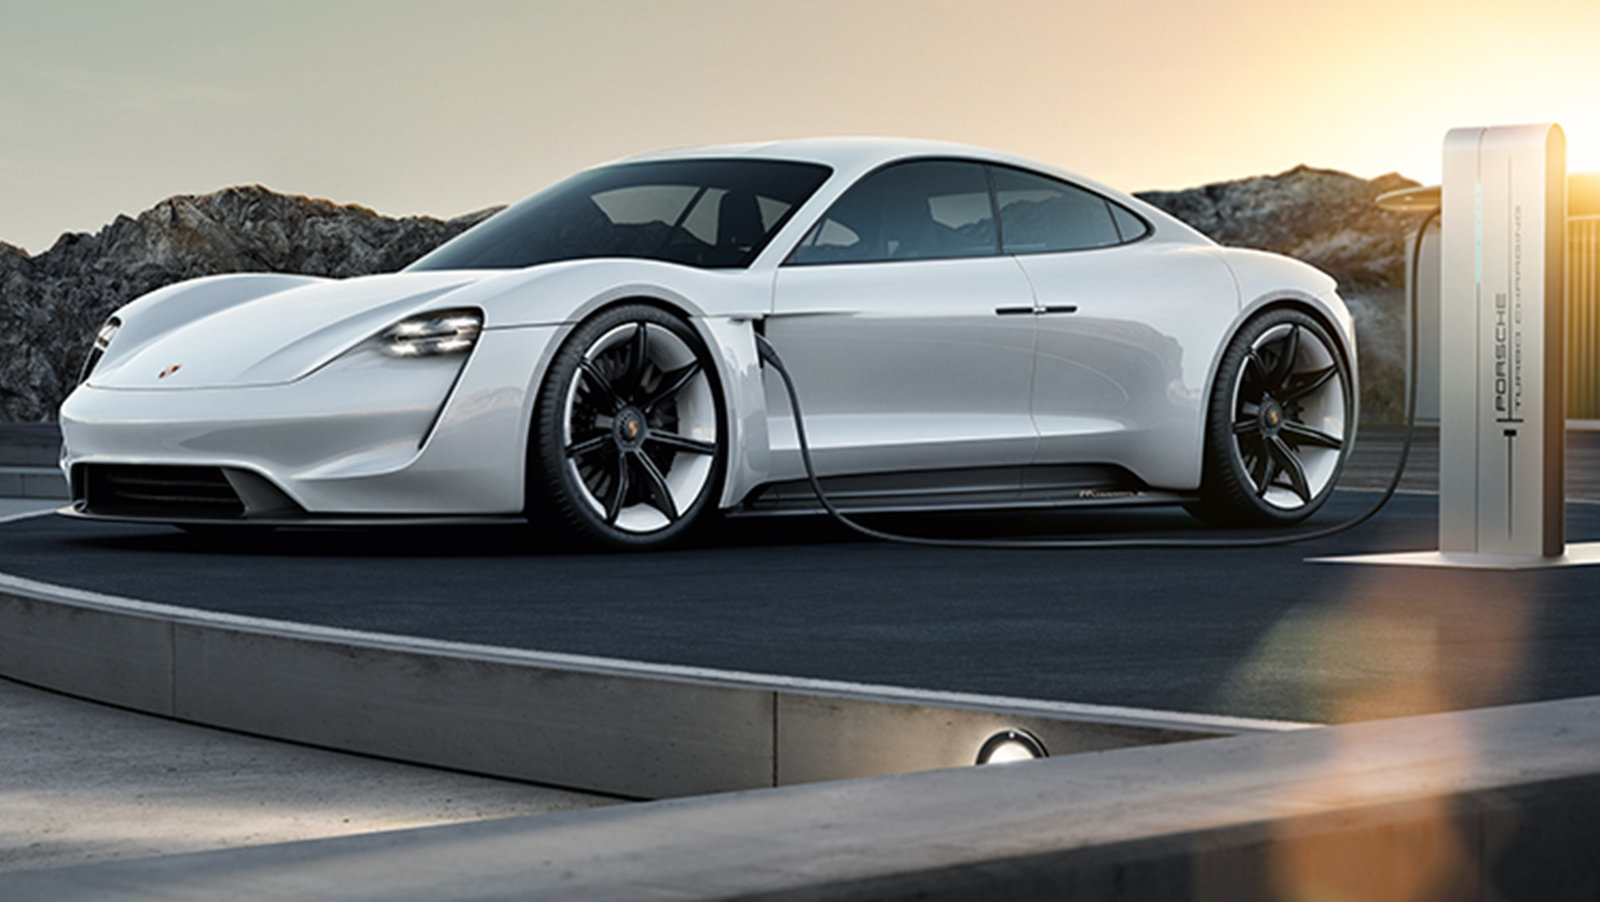 Porsche Taycan owners will get three years of free charging | DeviceDaily.com